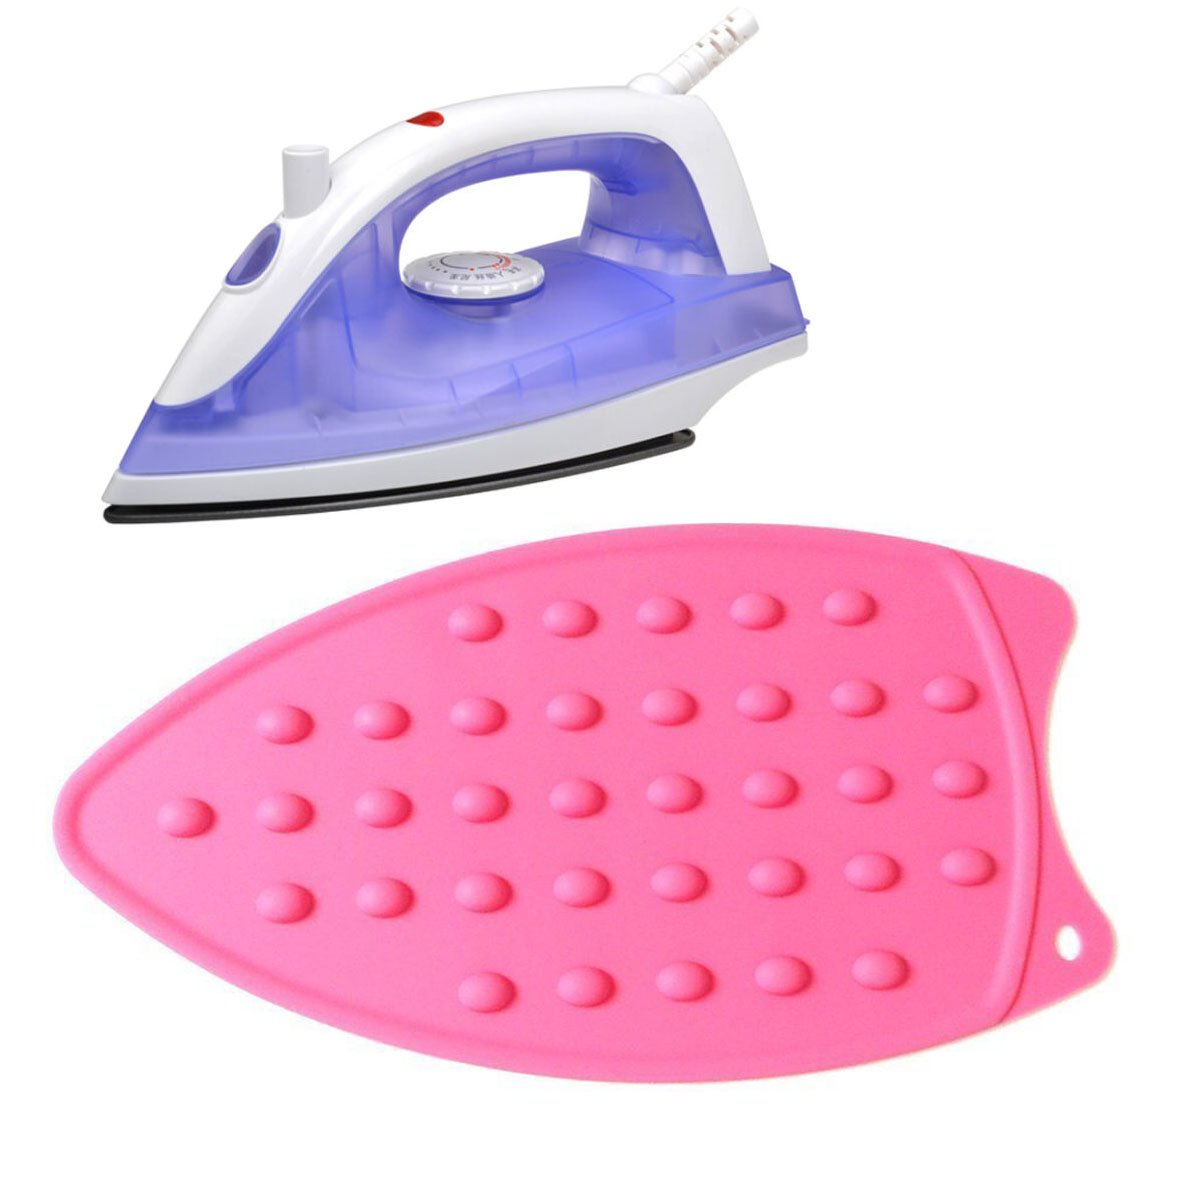 AMZALI Silicone Iron Rest Pad for Ironing Board Hot Resistant Mat Blue